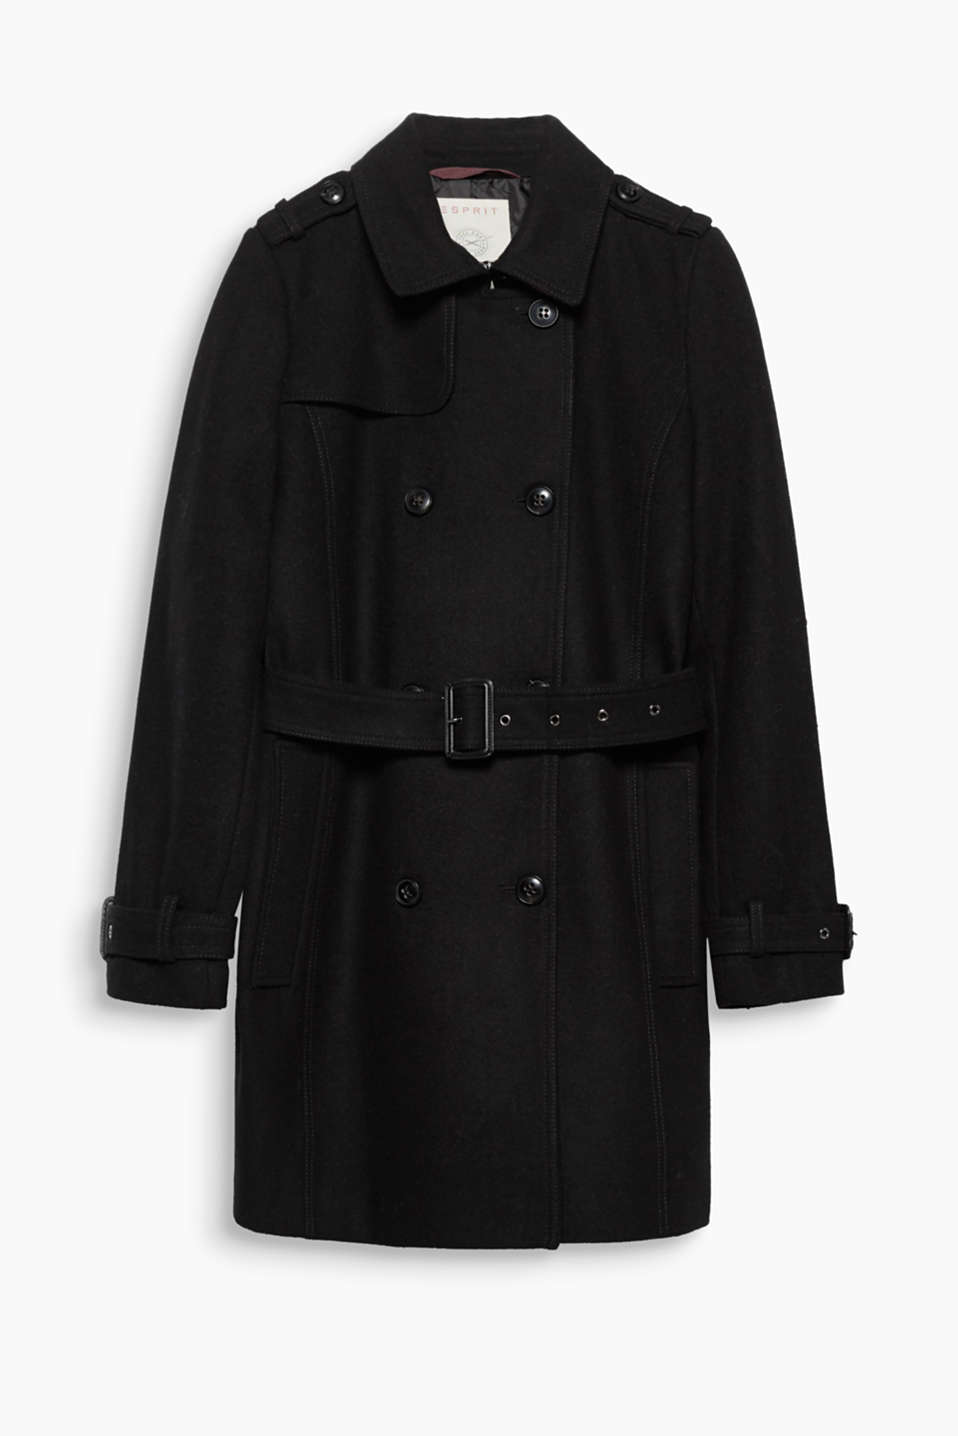 A classic trench coat becomes winter-ready thanks to blended wool and warm padding!